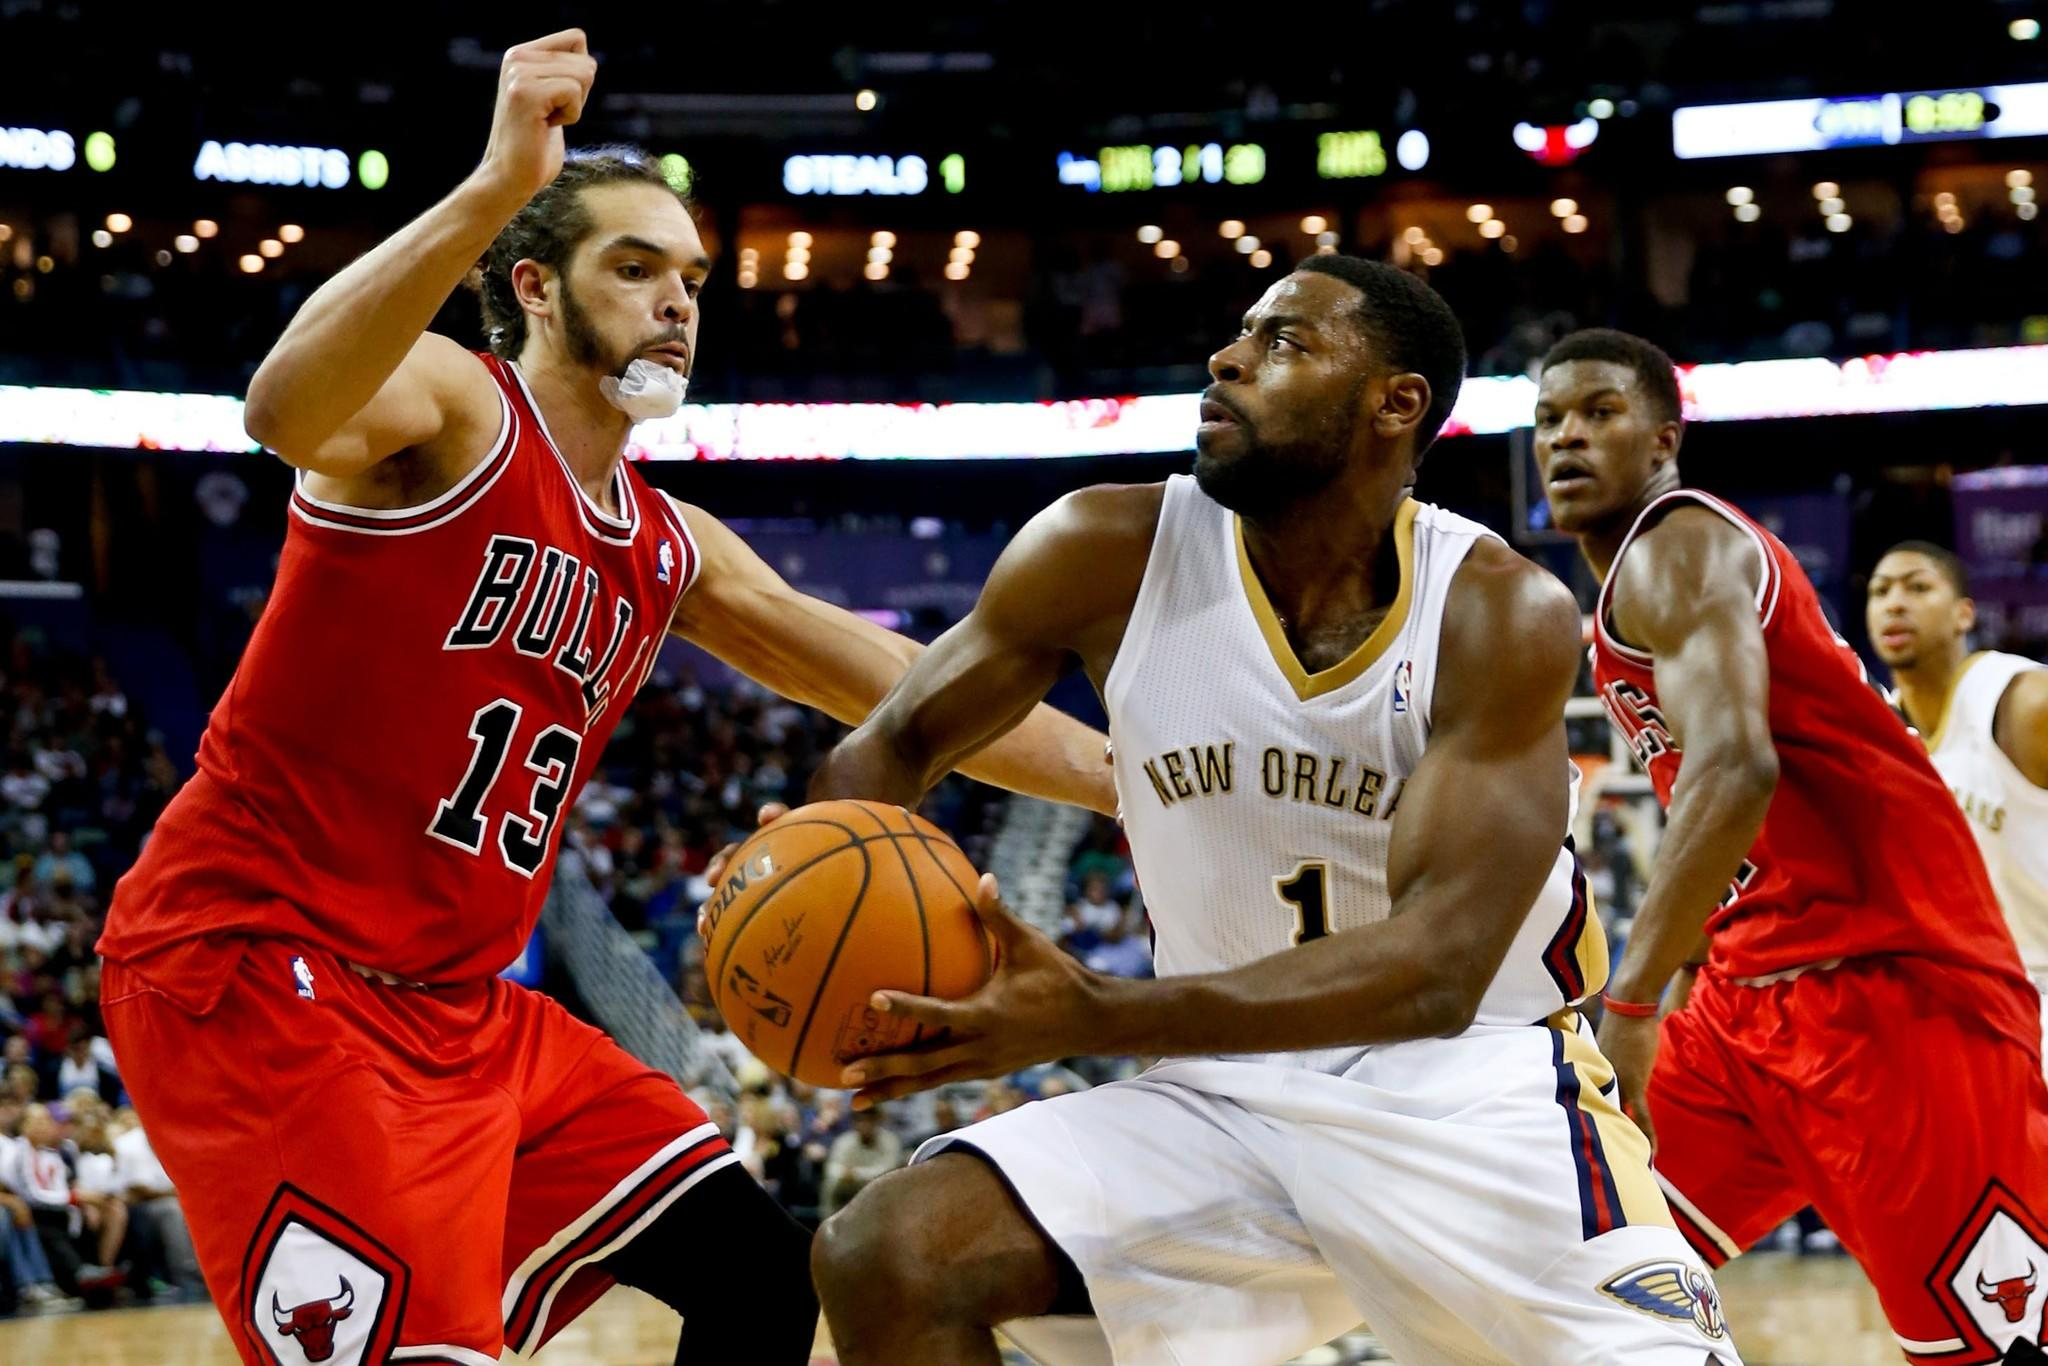 New Orleans Pelicans point guard Tyreke Evans (1) drives past Chicago Bulls center Joakim Noah (13) during the second half of a game at the New Orleans Arena. The Pelicans defeated the Bulls 88-79.